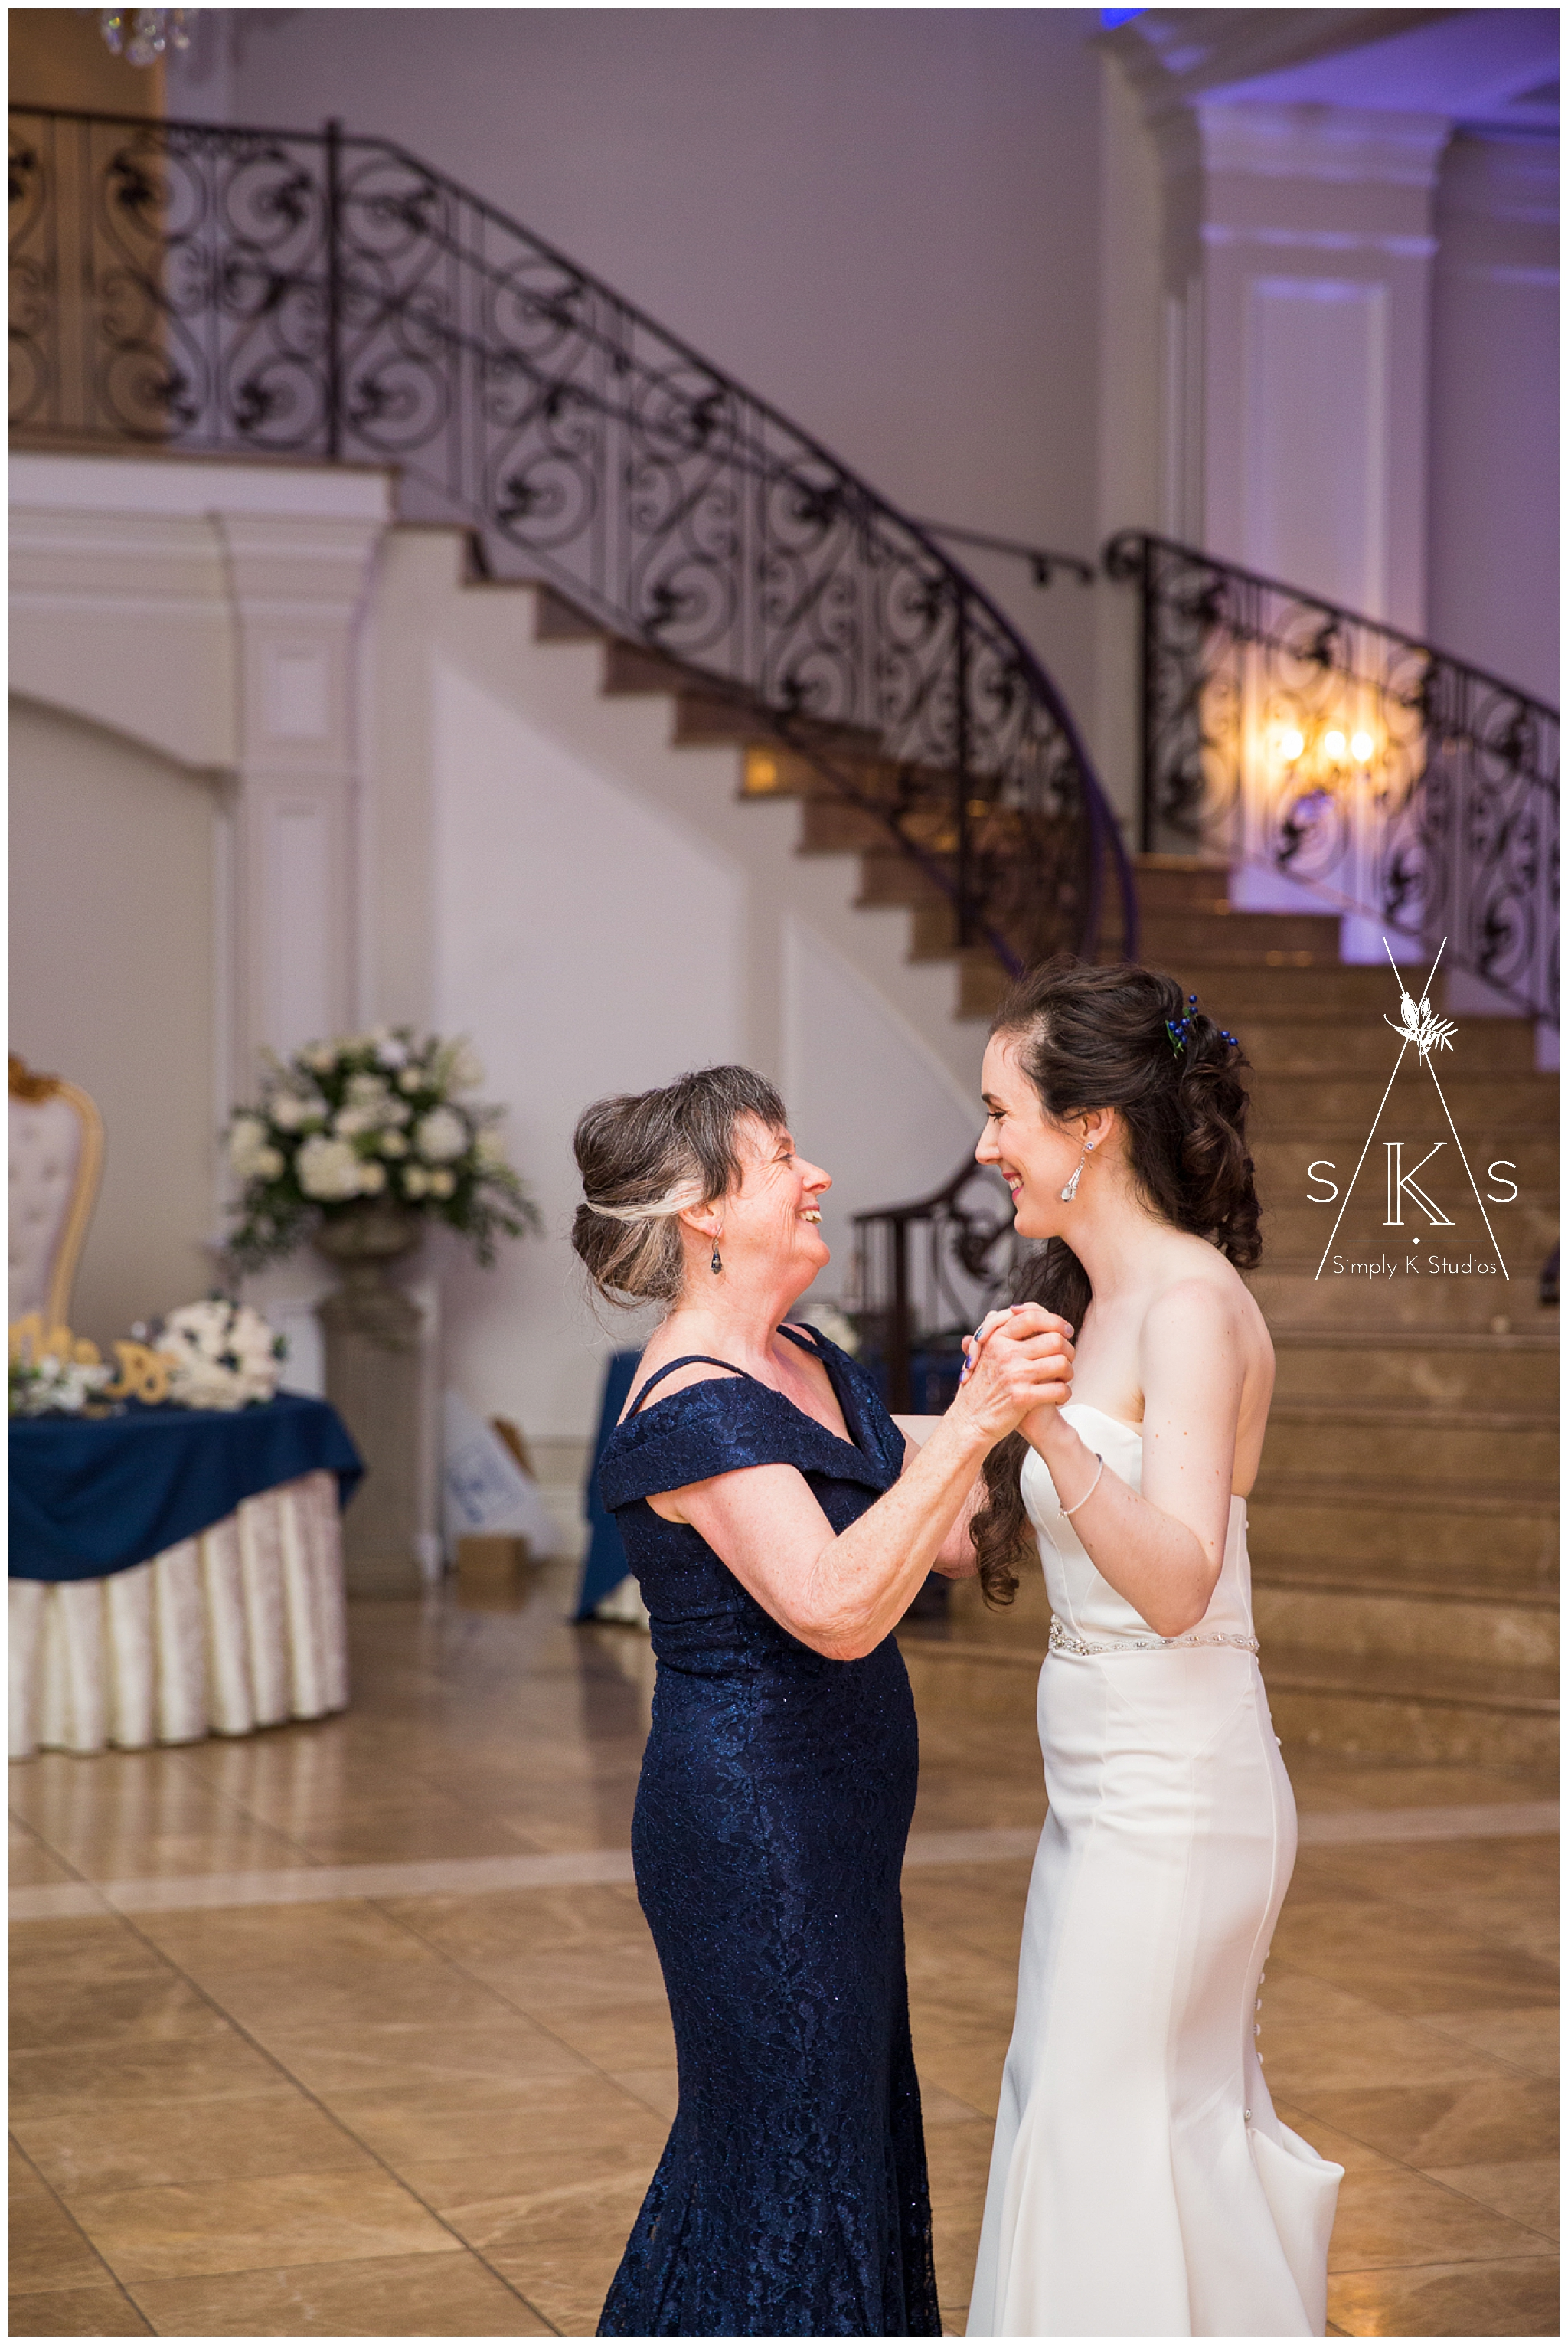 99 Mother Daughter Dances at a Wedding.jpg